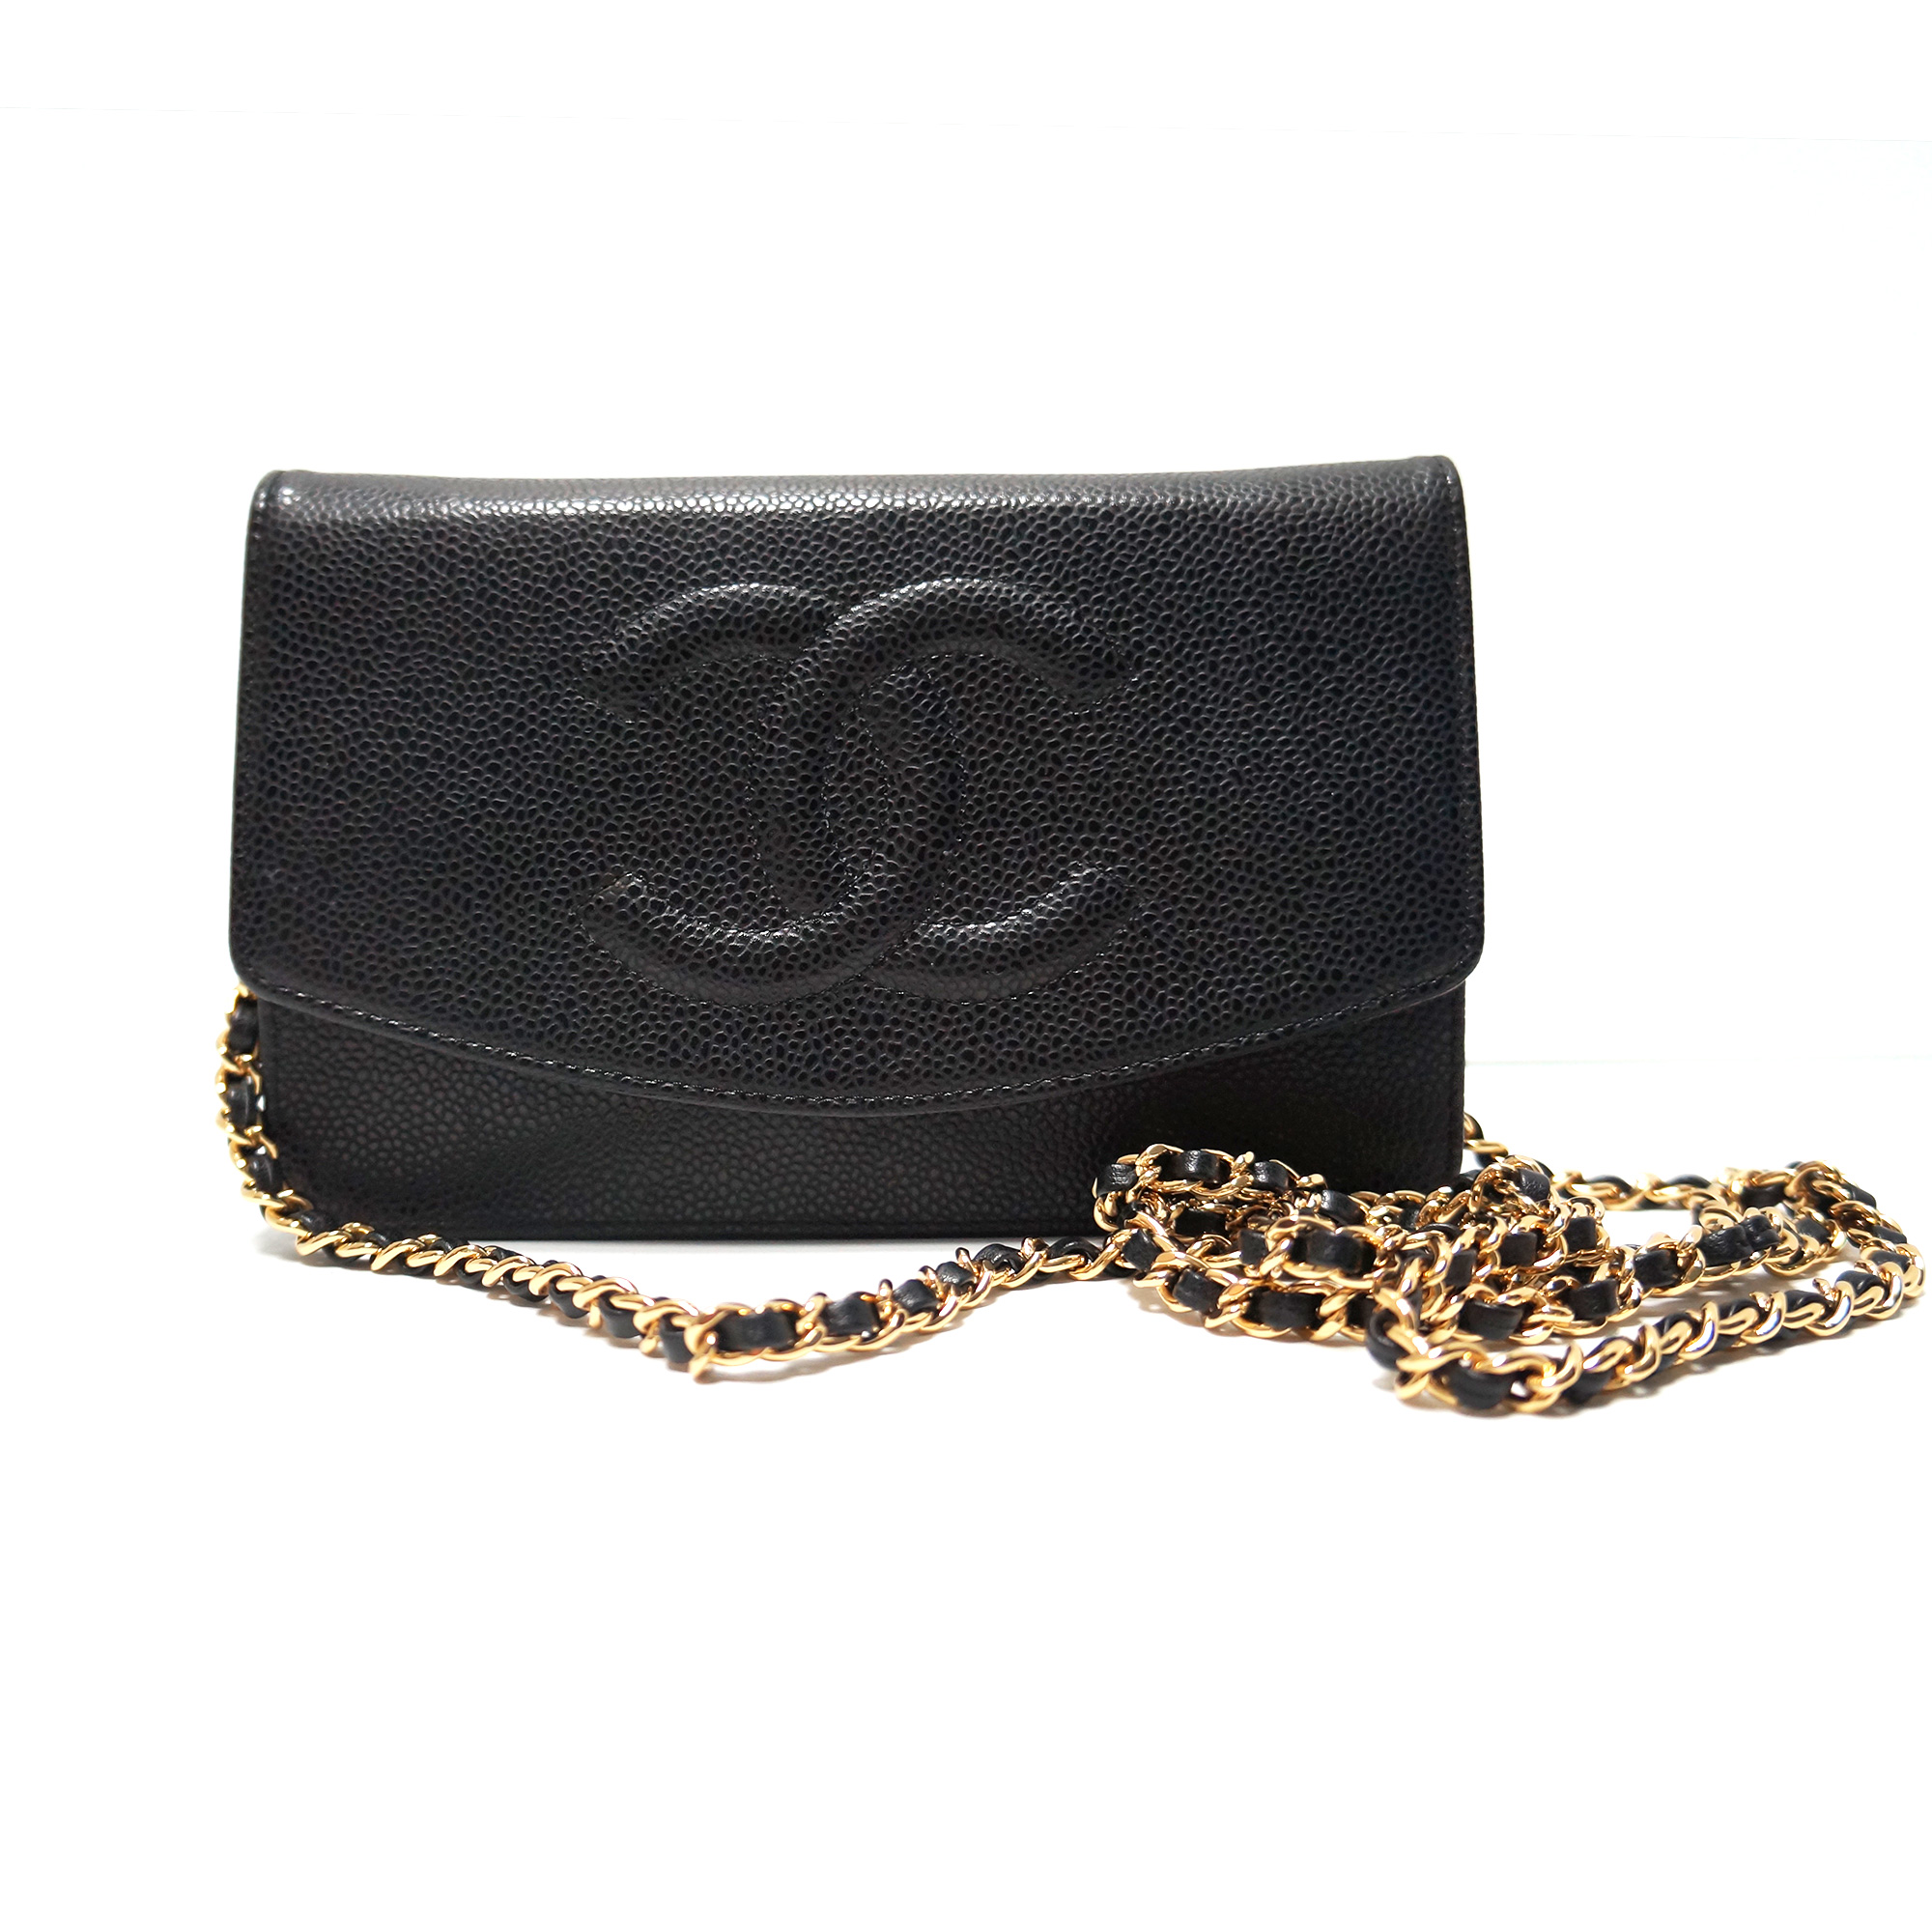 30067b844 Chanel Timeless Wallet-on-a-Chain WOC Bag Black Caviar Leather Gold ...